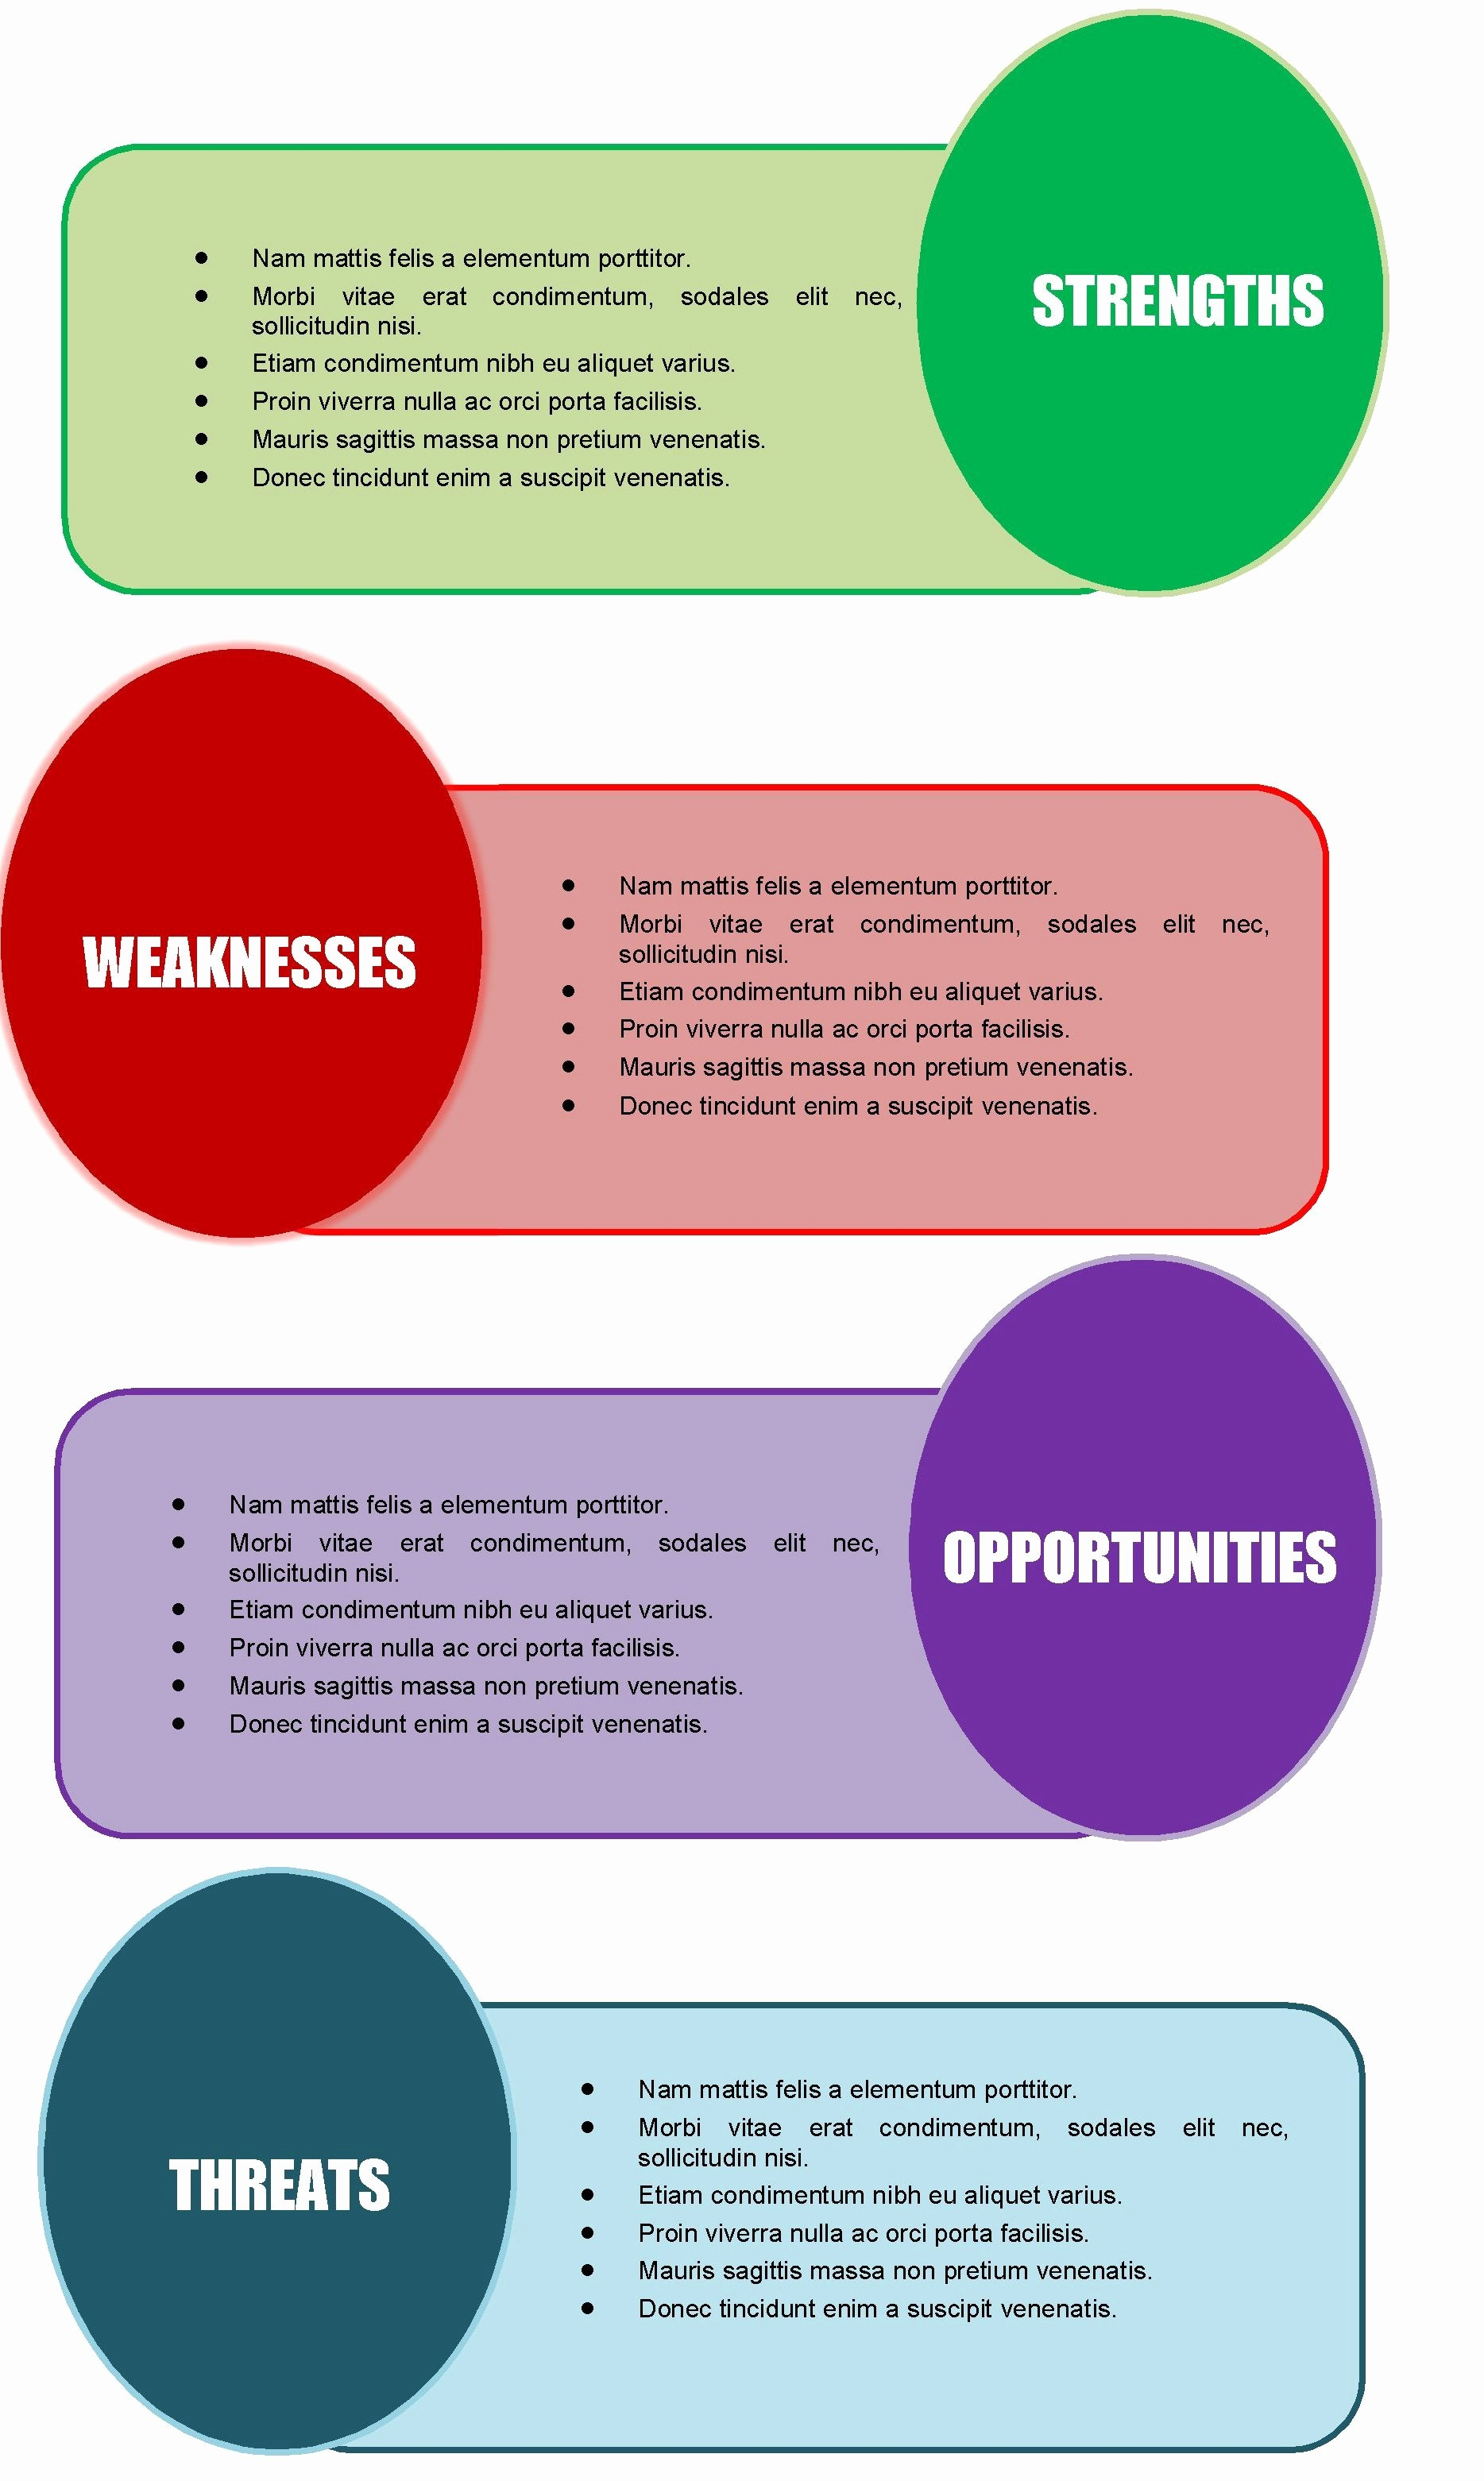 Swot Analysis Template Microsoft Word Elegant 40 Free Swot Analysis Templates In Word Demplates